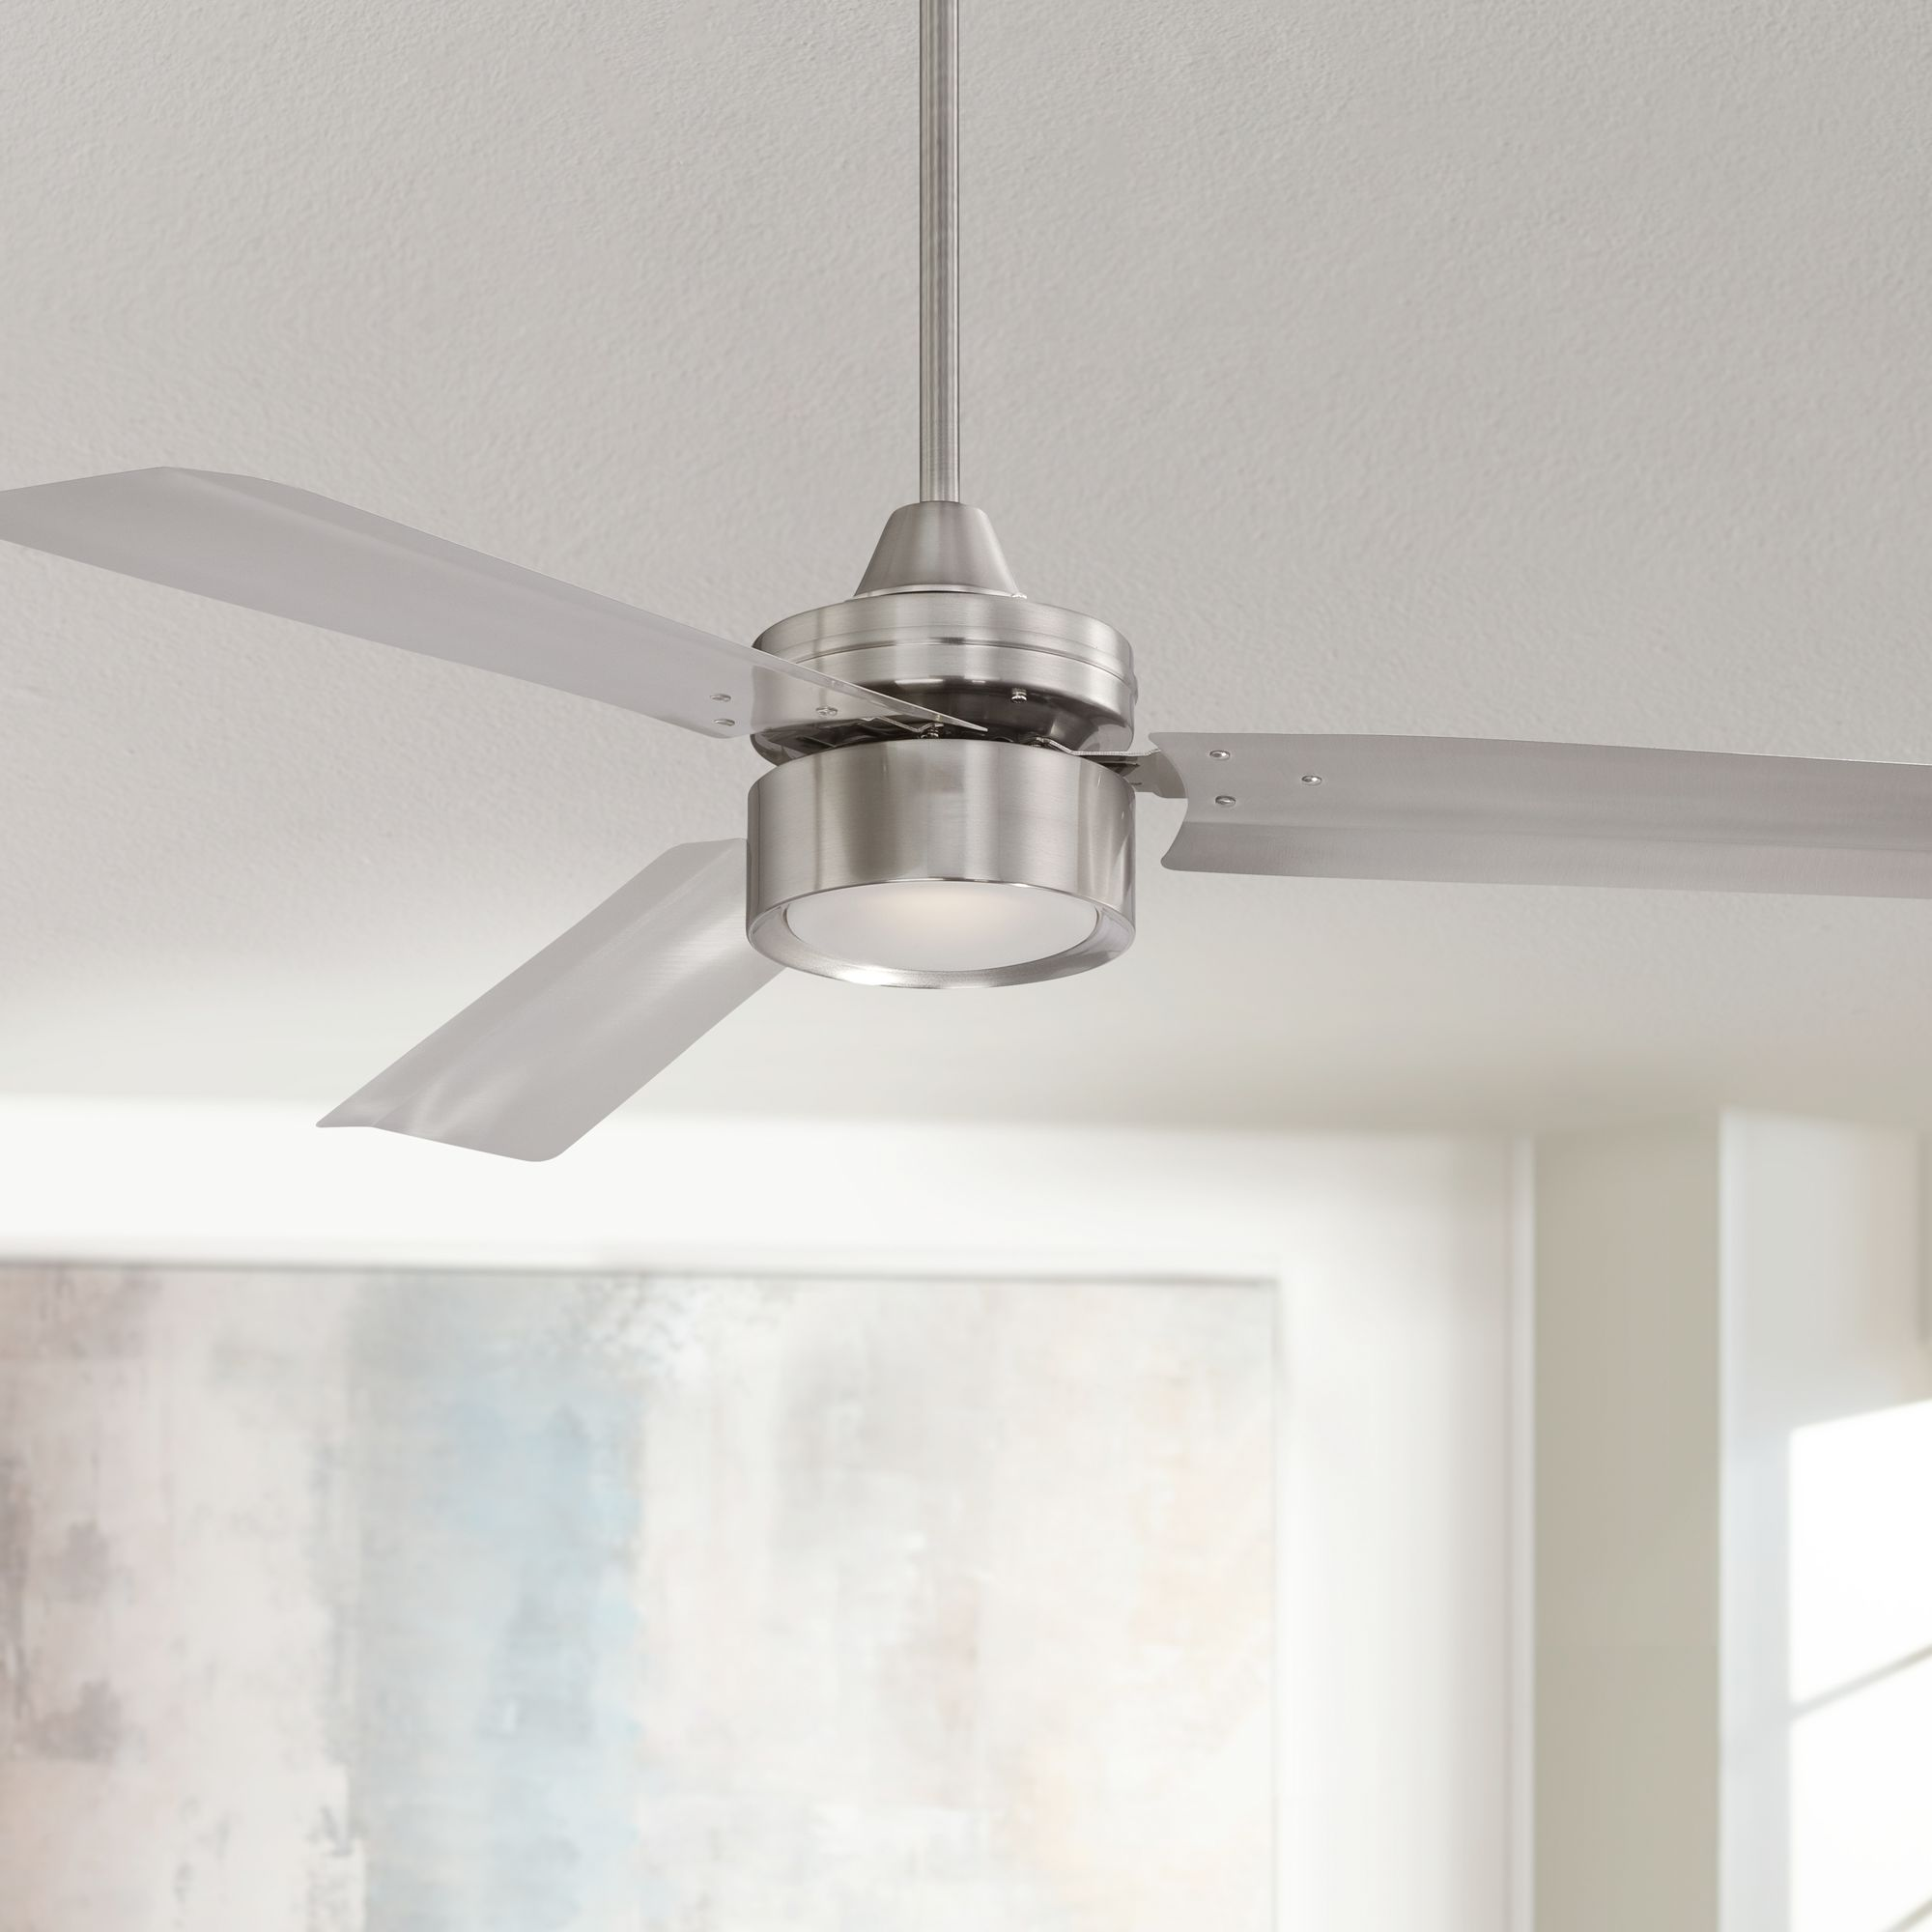 52  Casa Arcus™ Brushed Nickel LED Ceiling Fan & 52